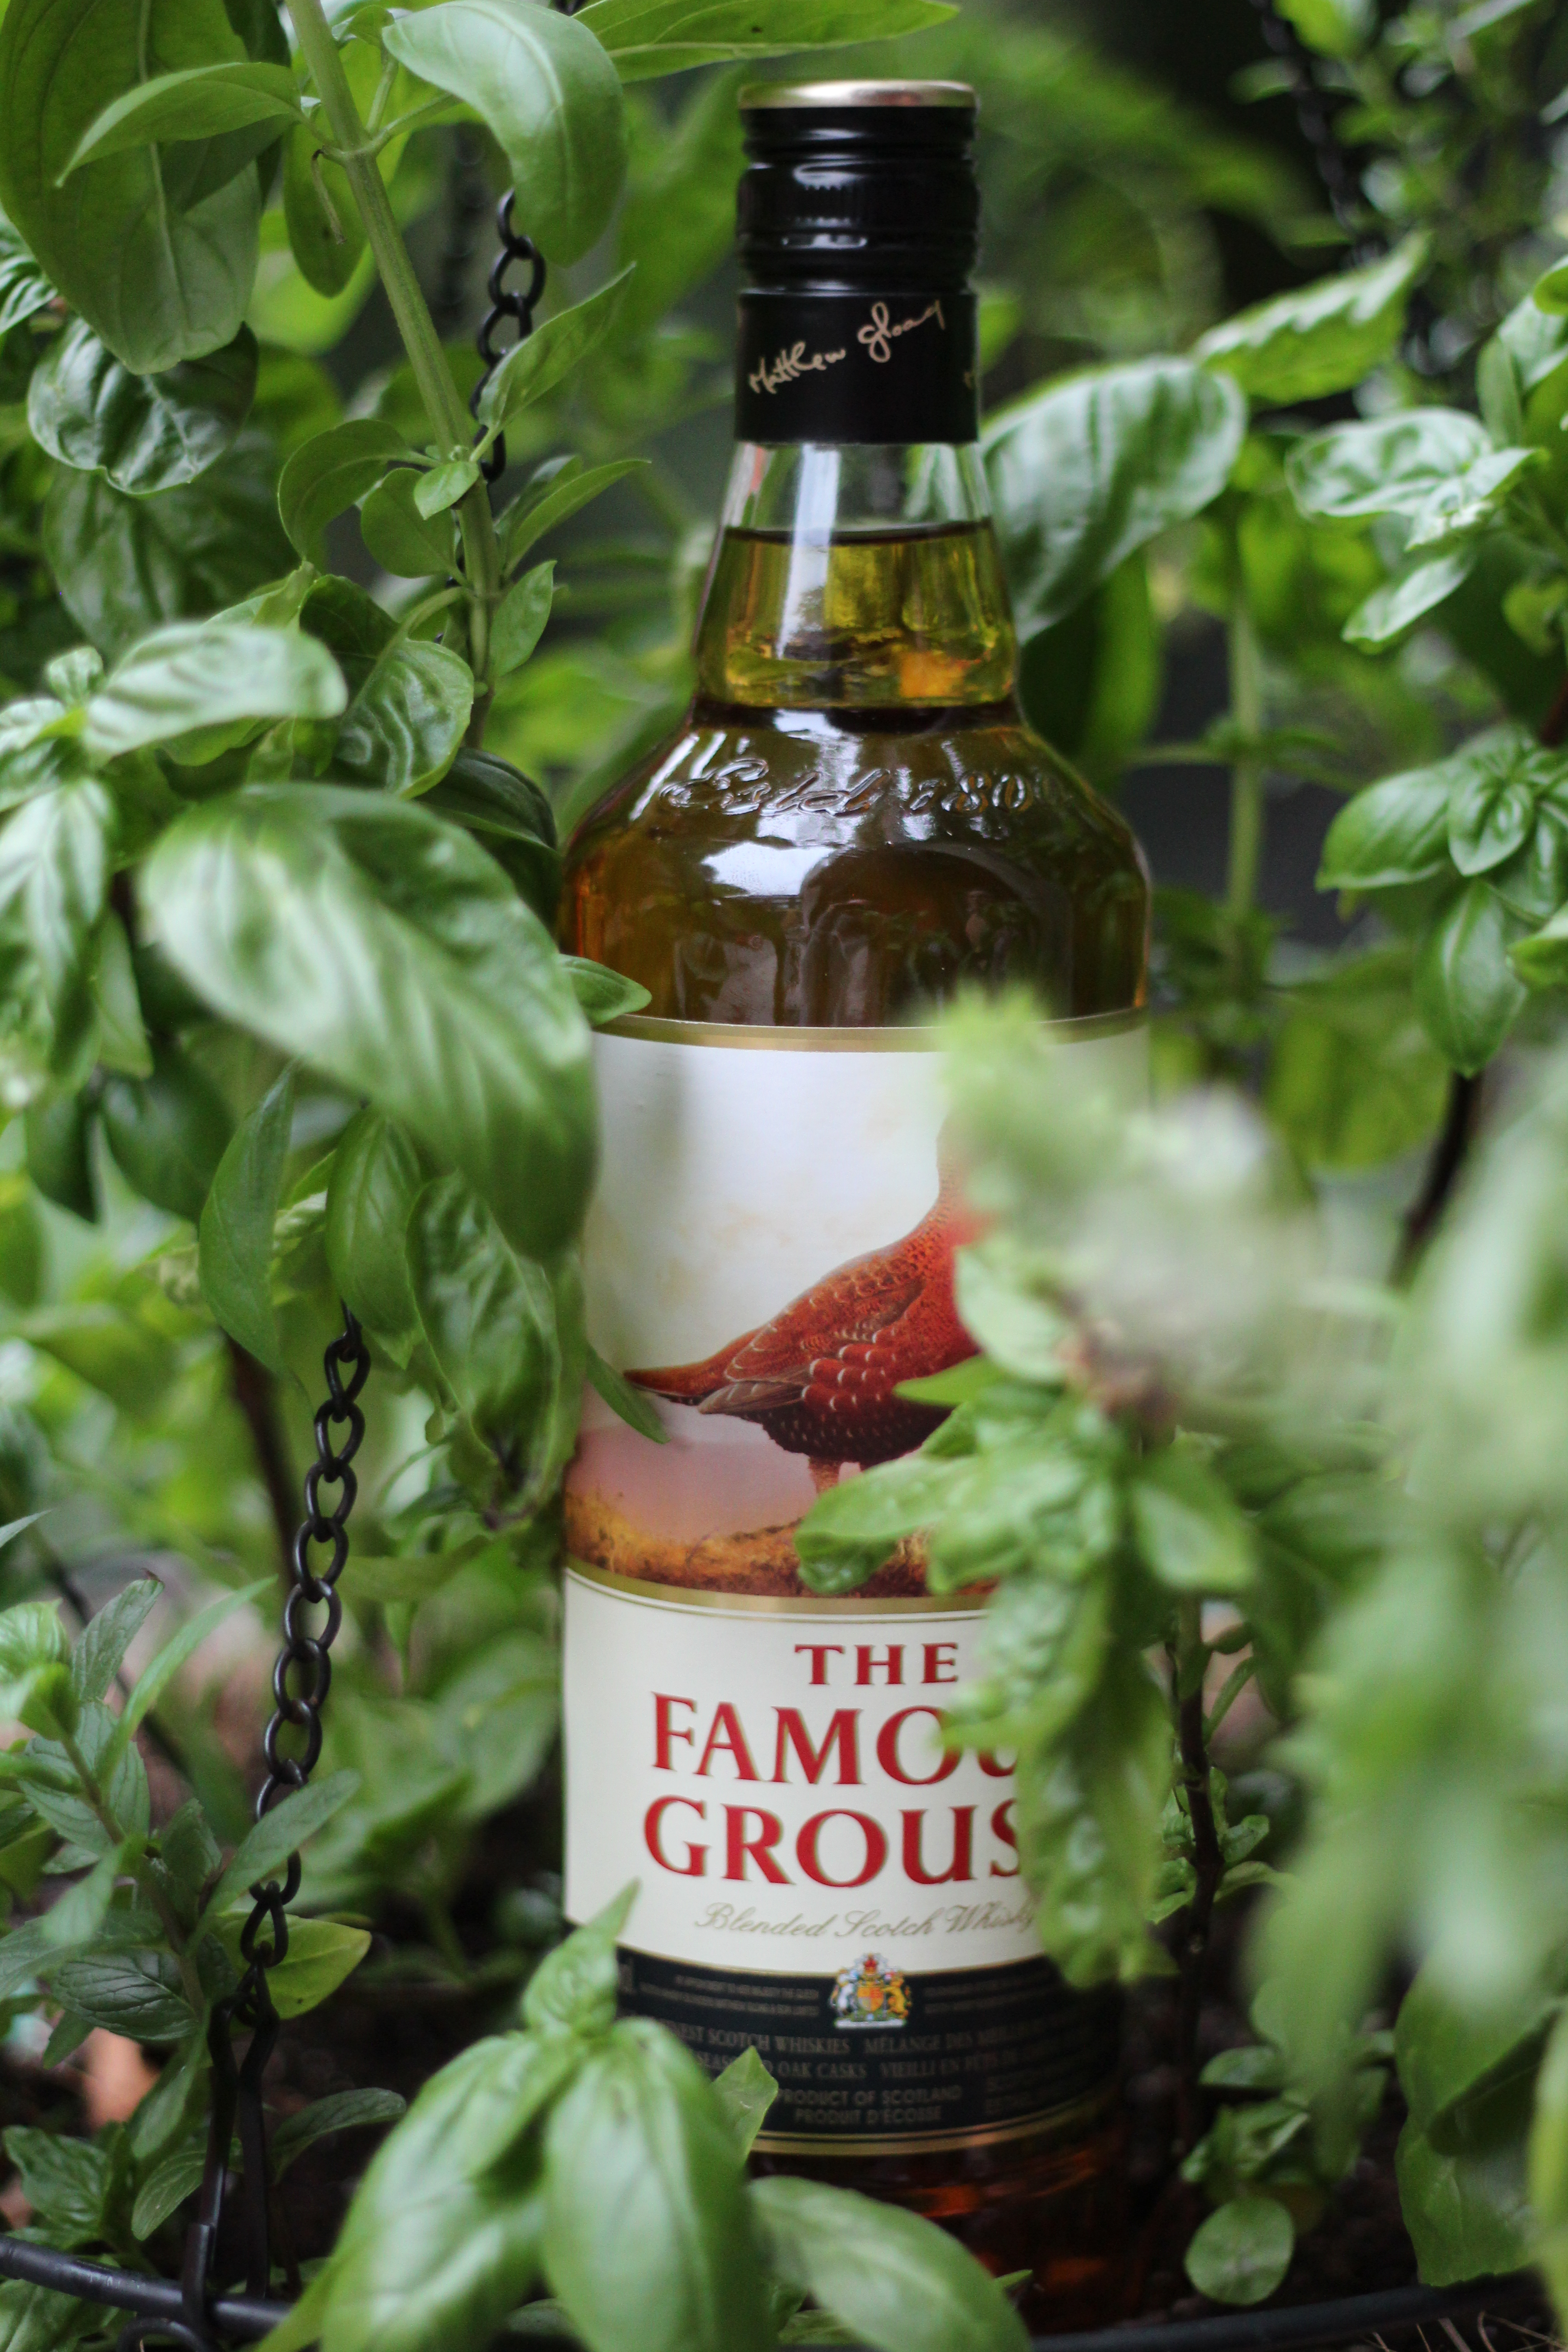 ScotchParty Review #7 – The Famous Grouse with Dan, Jared & Bowick